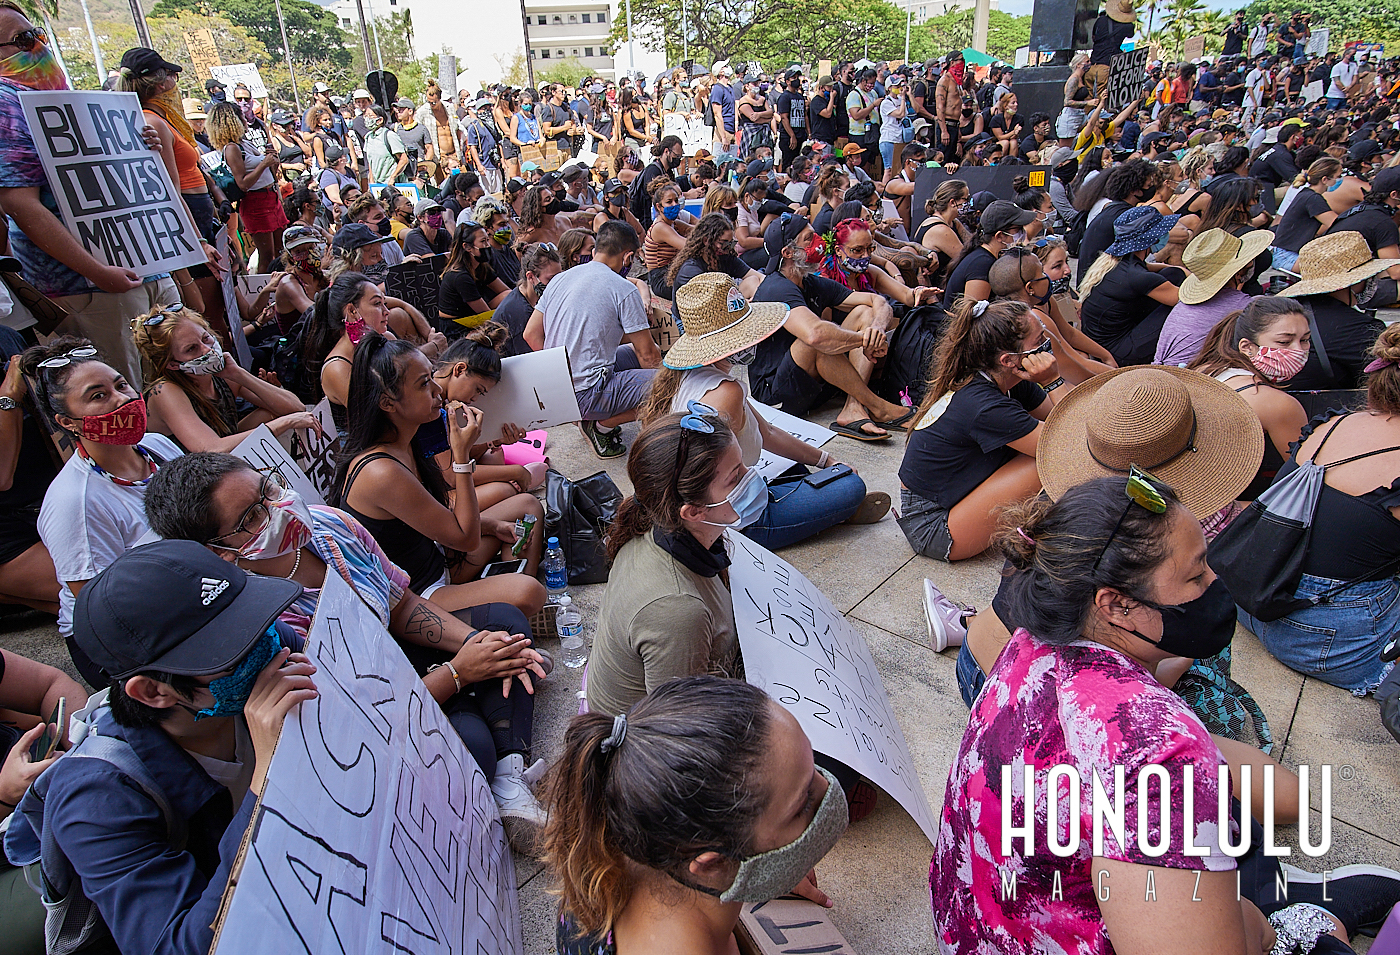 black lives matter protests in honolulu hawaii